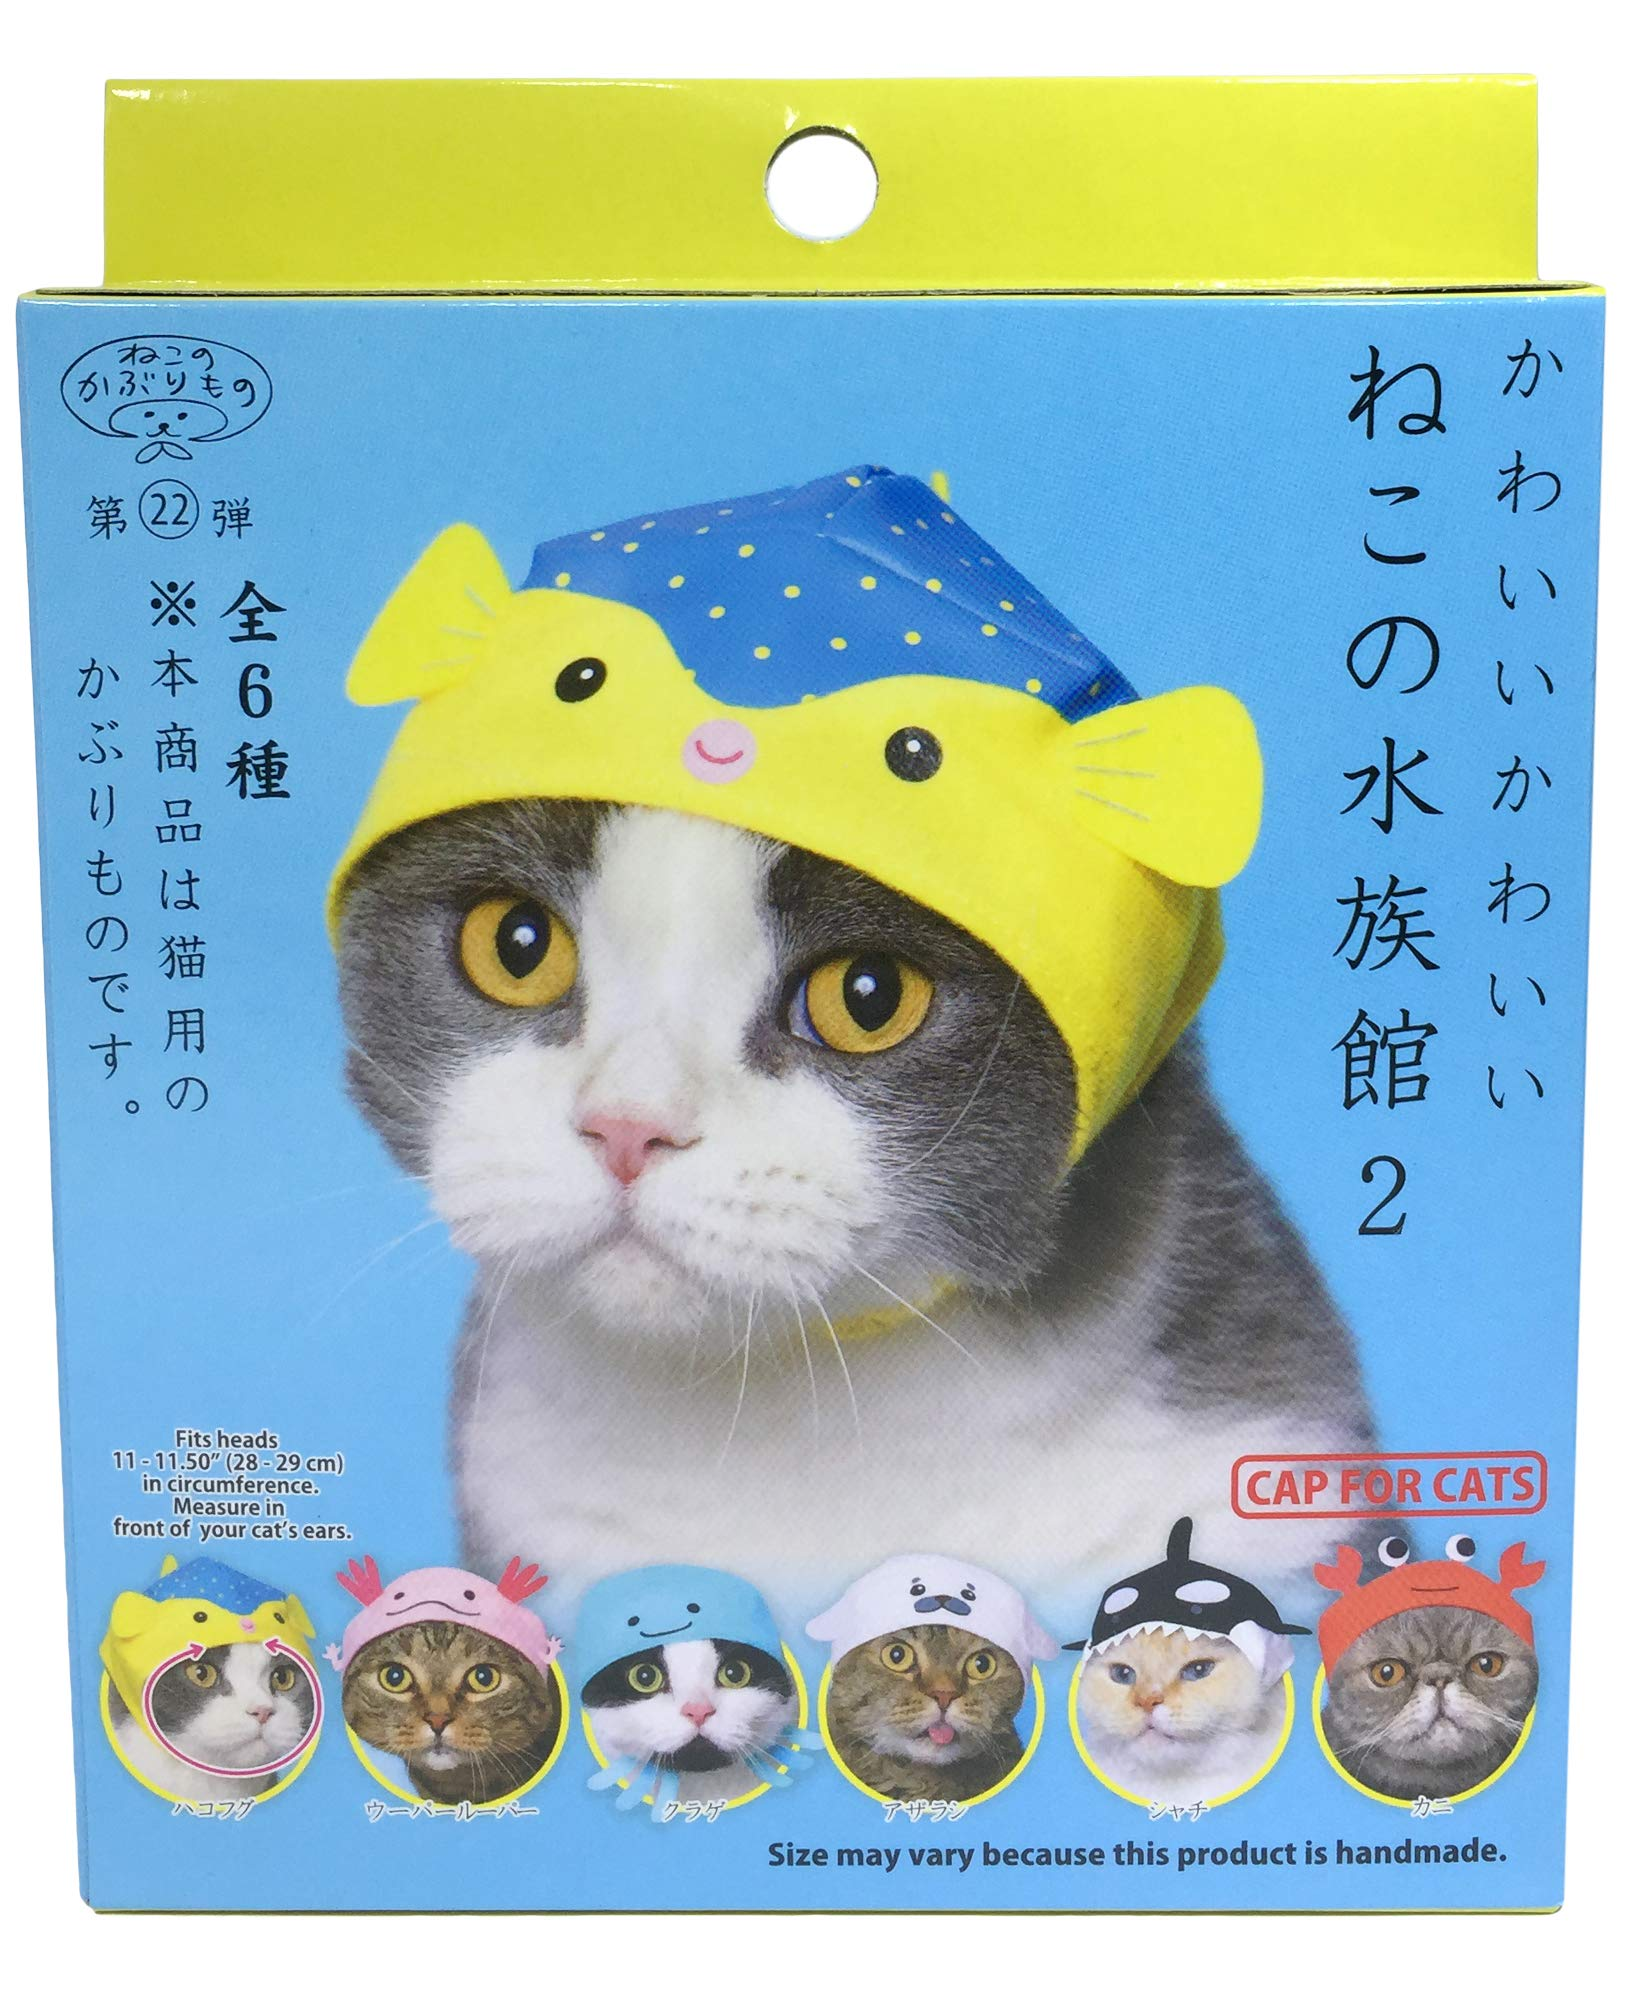 Kitan Club Cat Cap – Pet Hat Blind Box Includes 1 of 6 Cute Styles – Soft, Comfortable – Authentic Japanese Kawaii…